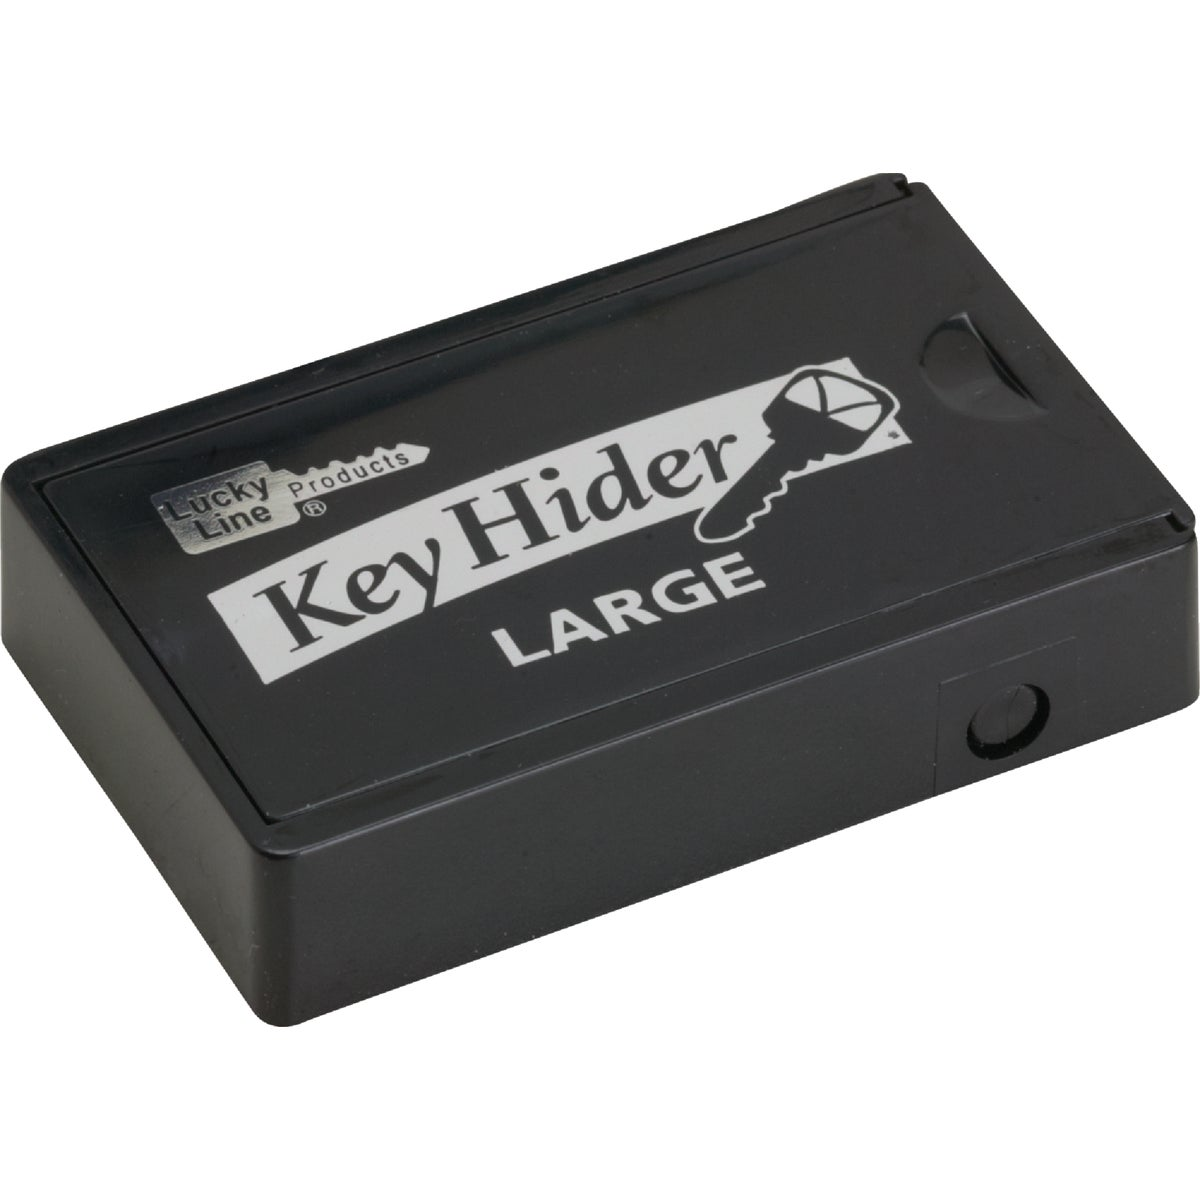 MAGNETIC KEY HIDER - 91001 by Lucky Line Prod Inc